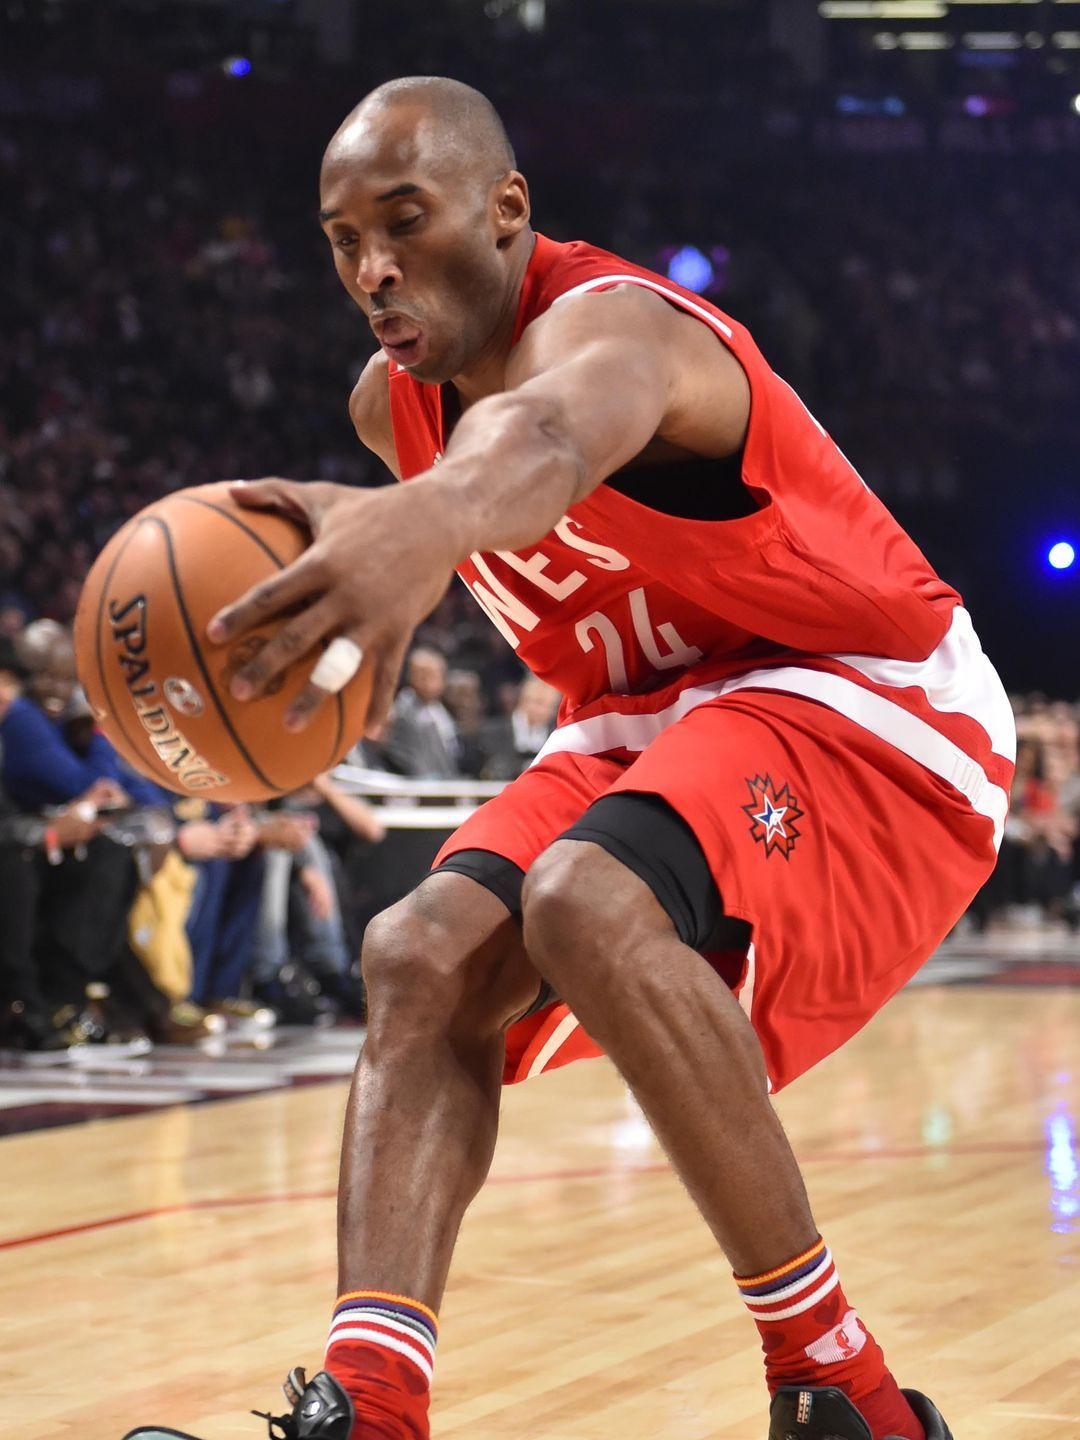 Western Conference forward Kobe Bryant chases down a loose